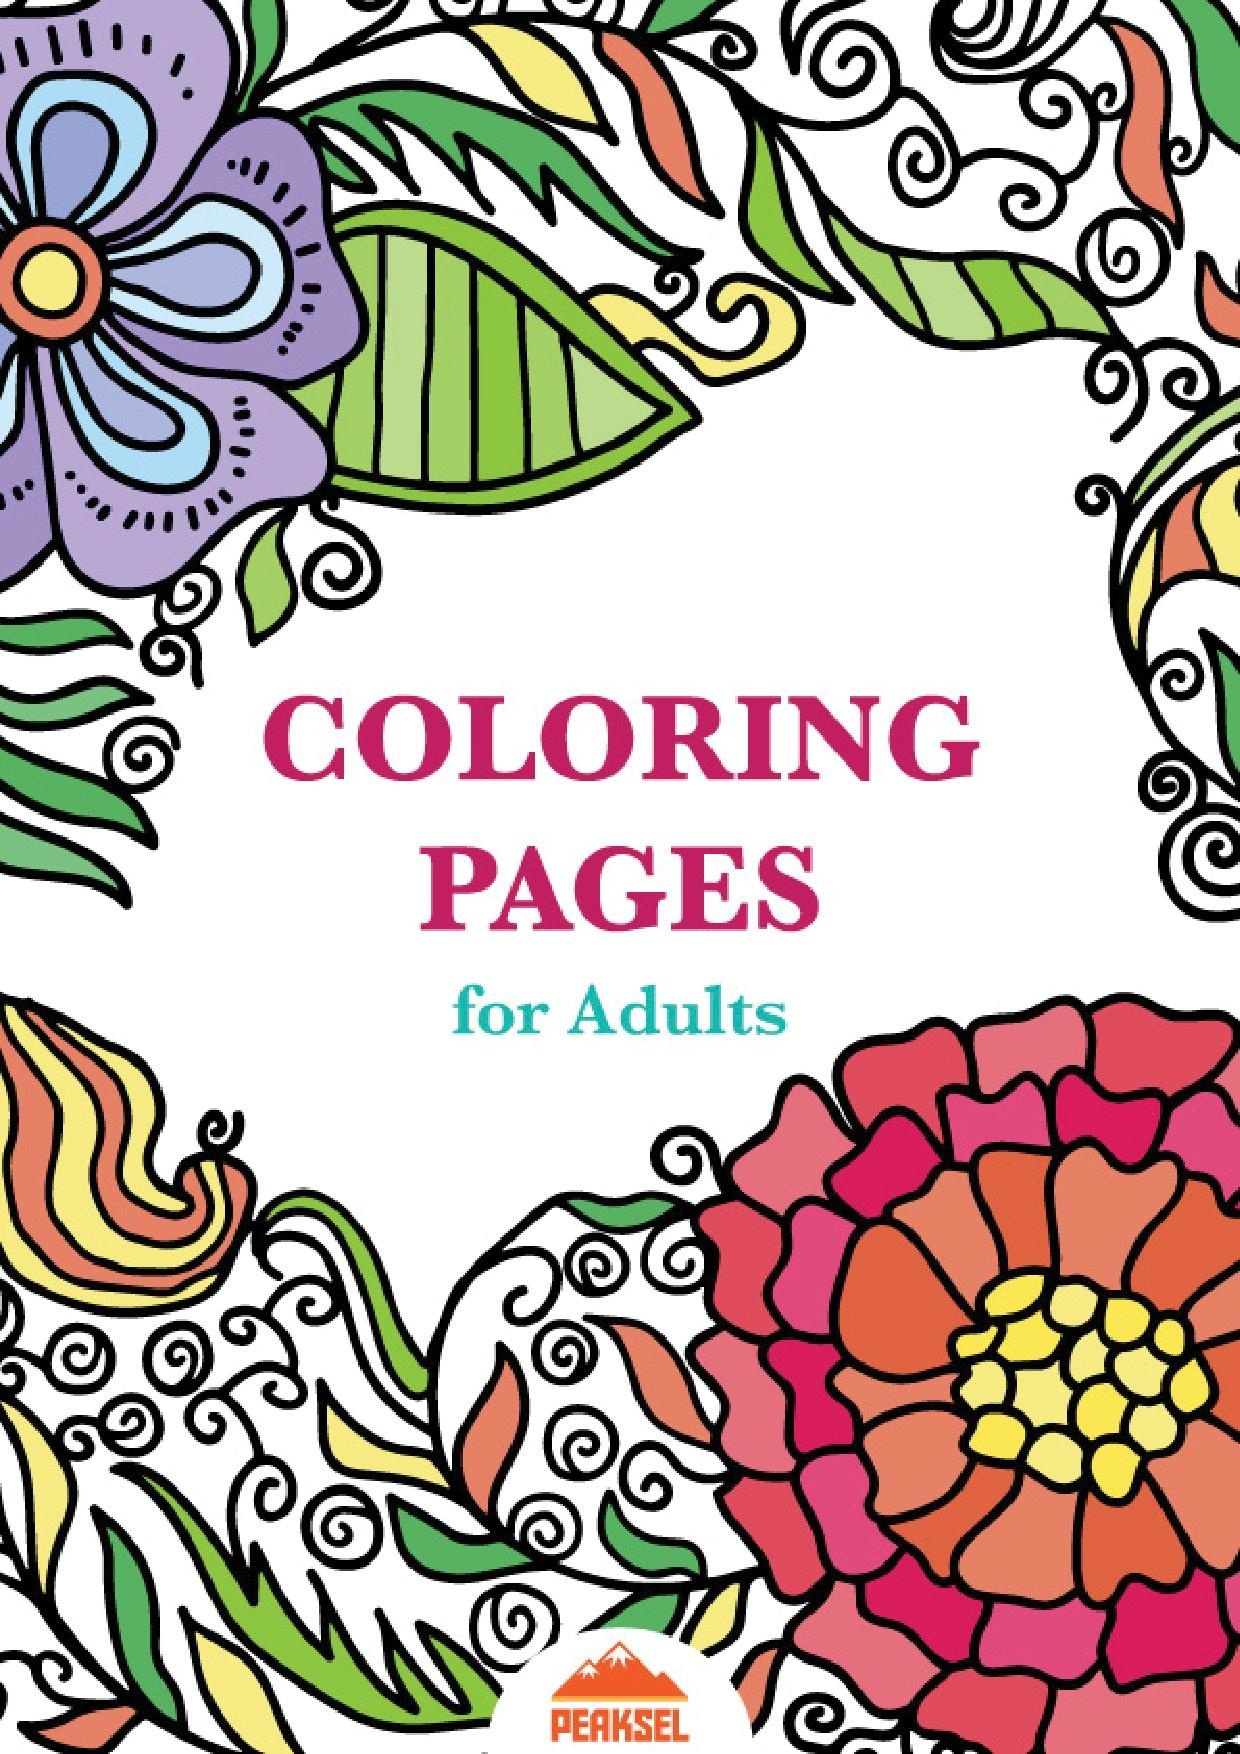 File:printable Coloring Pages For Adults - Free Adult Coloring Book - Free Printable Coloring Book